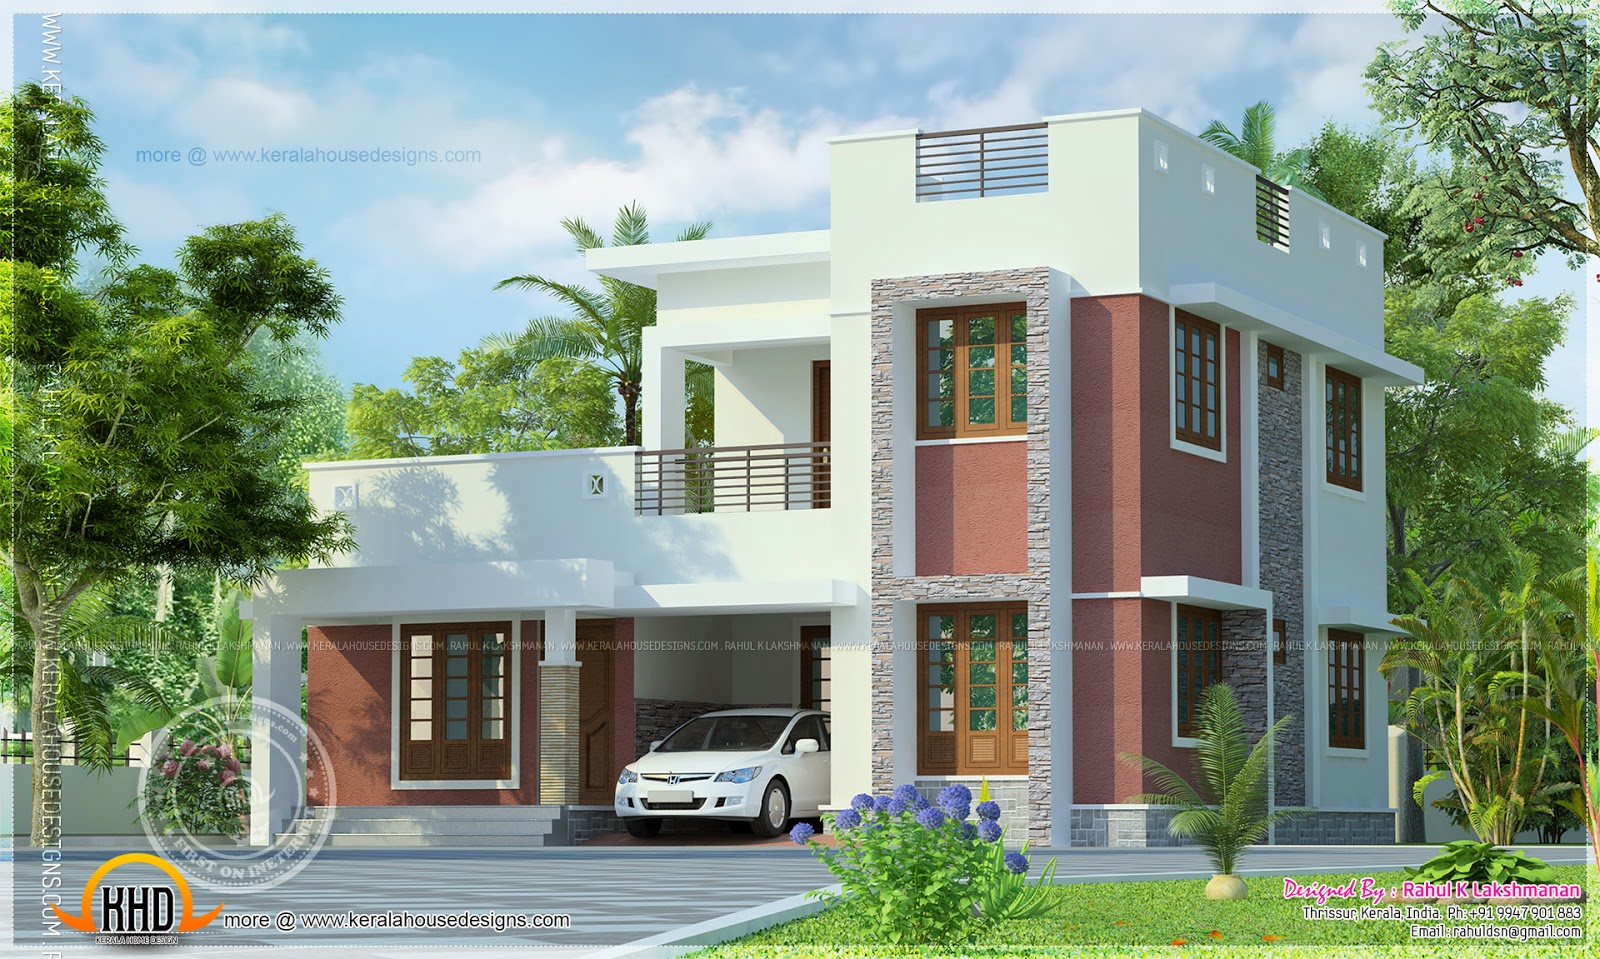 Simple flat roof house exterior kerala home design and for Simple house plans in india